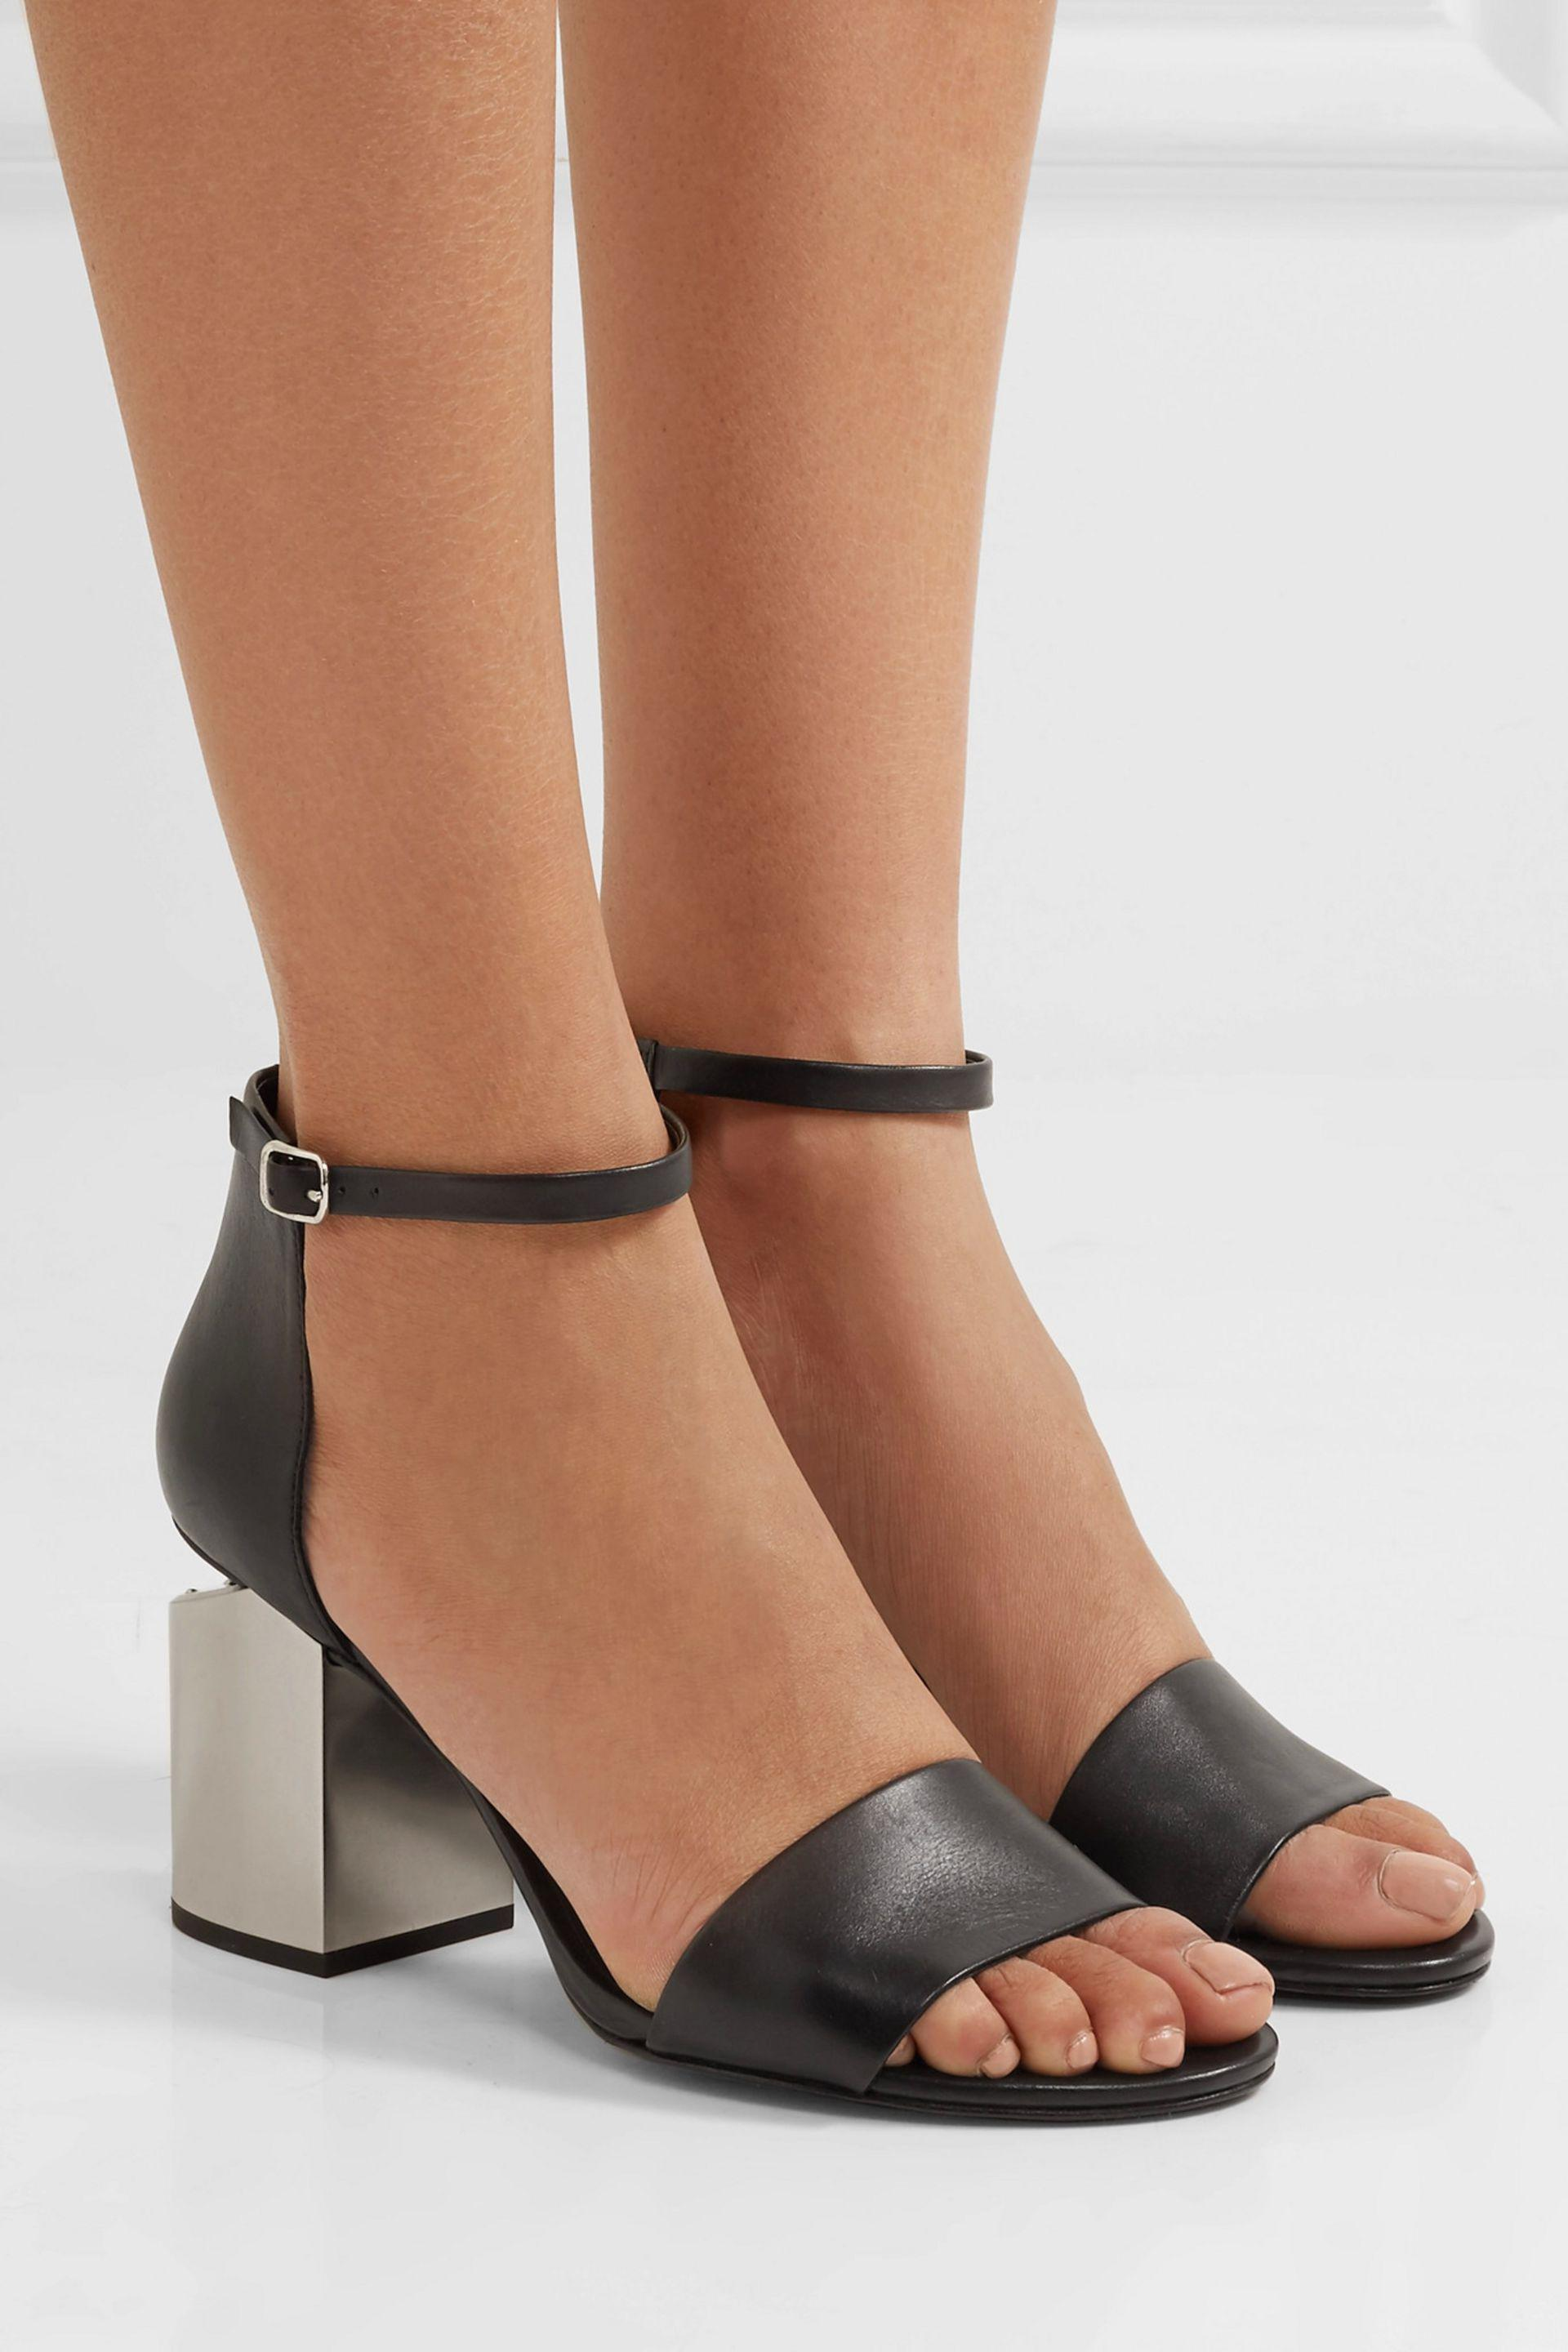 f8503fb49d23 Alexander Wang Abby Leather Sandals in Black - Lyst